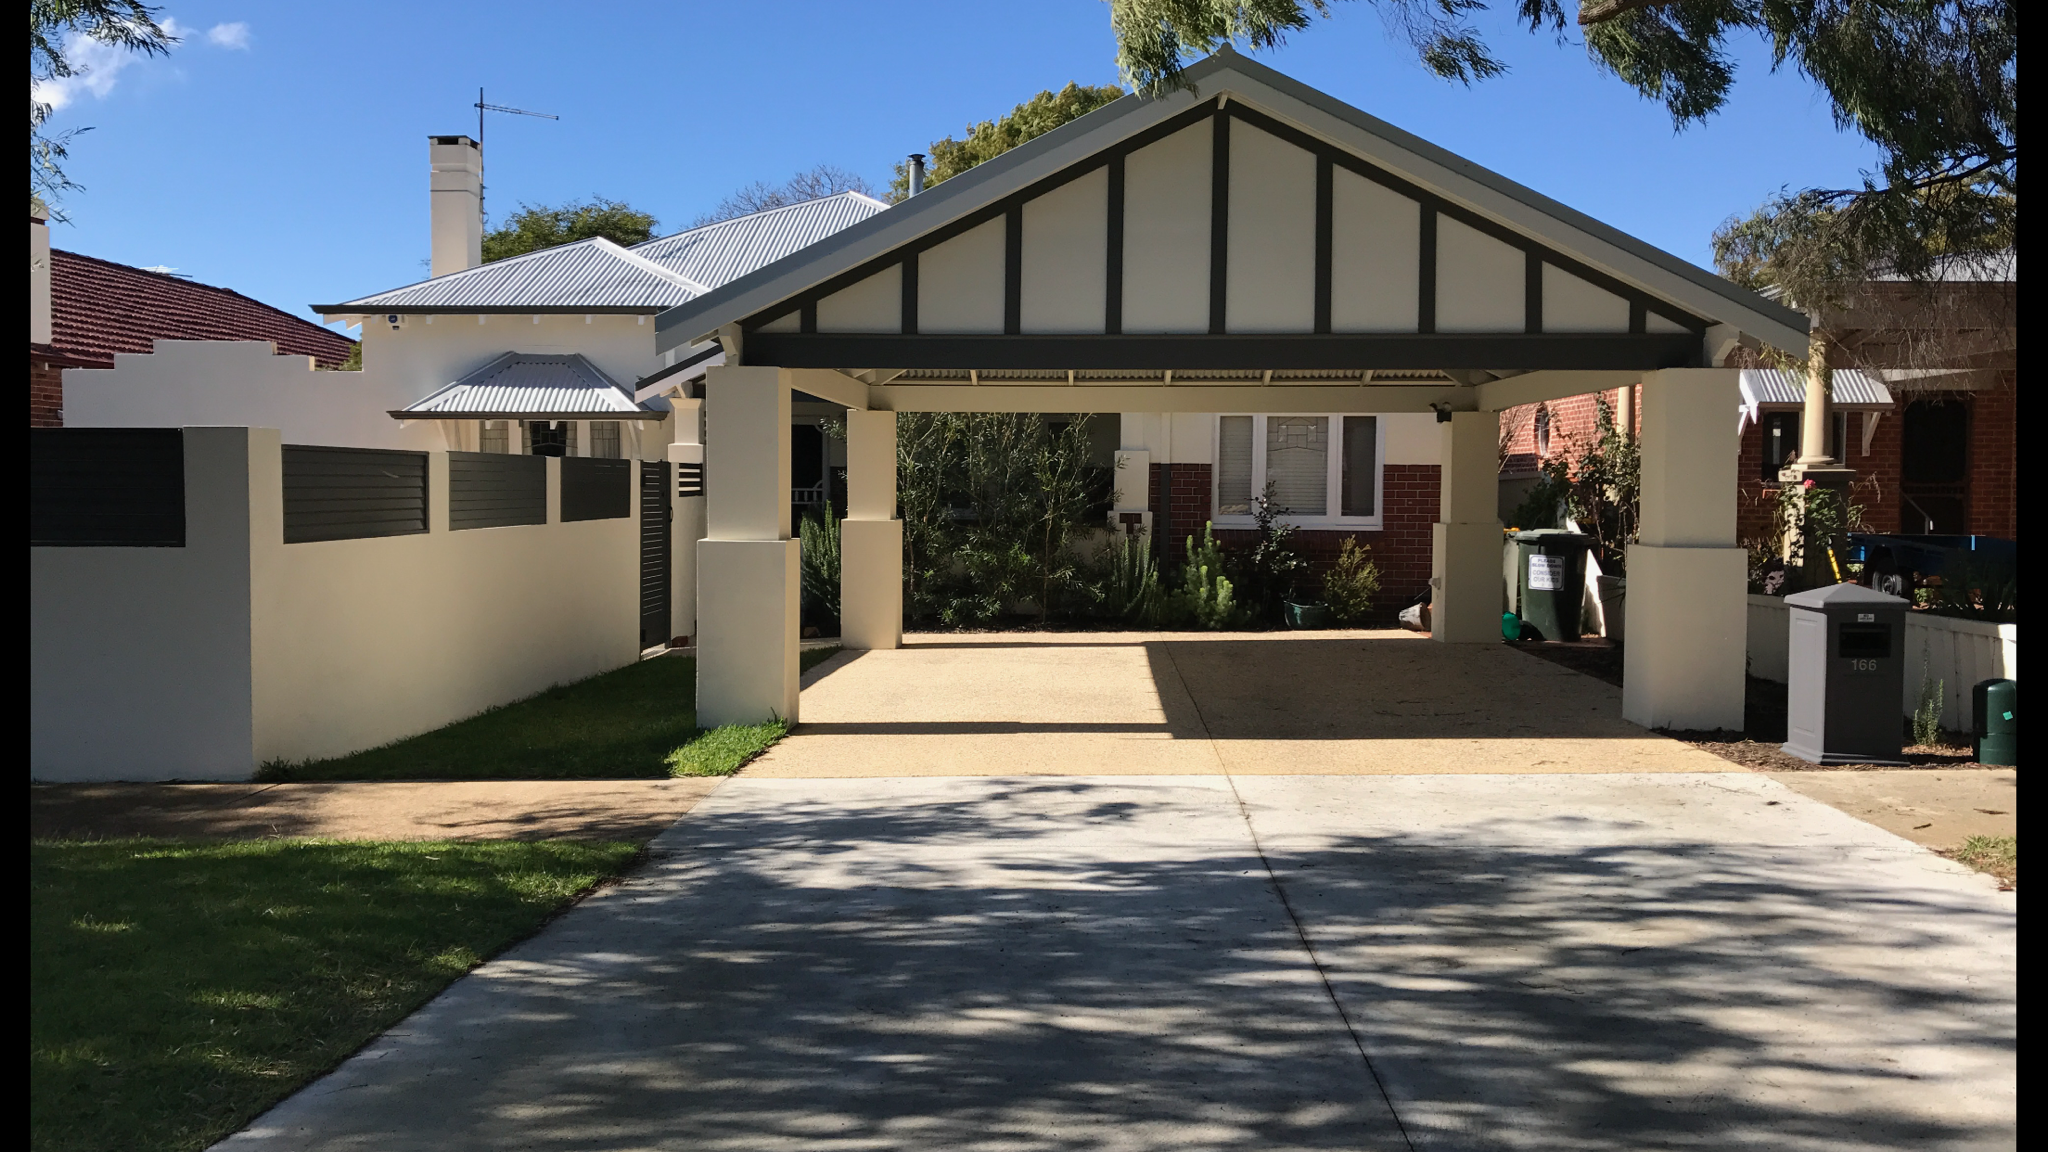 When The Details Are On Point Beautiful Double Carport In South Perth Features Rendered Brick Piers Corruga Exterior Design Double Carport Residential Design